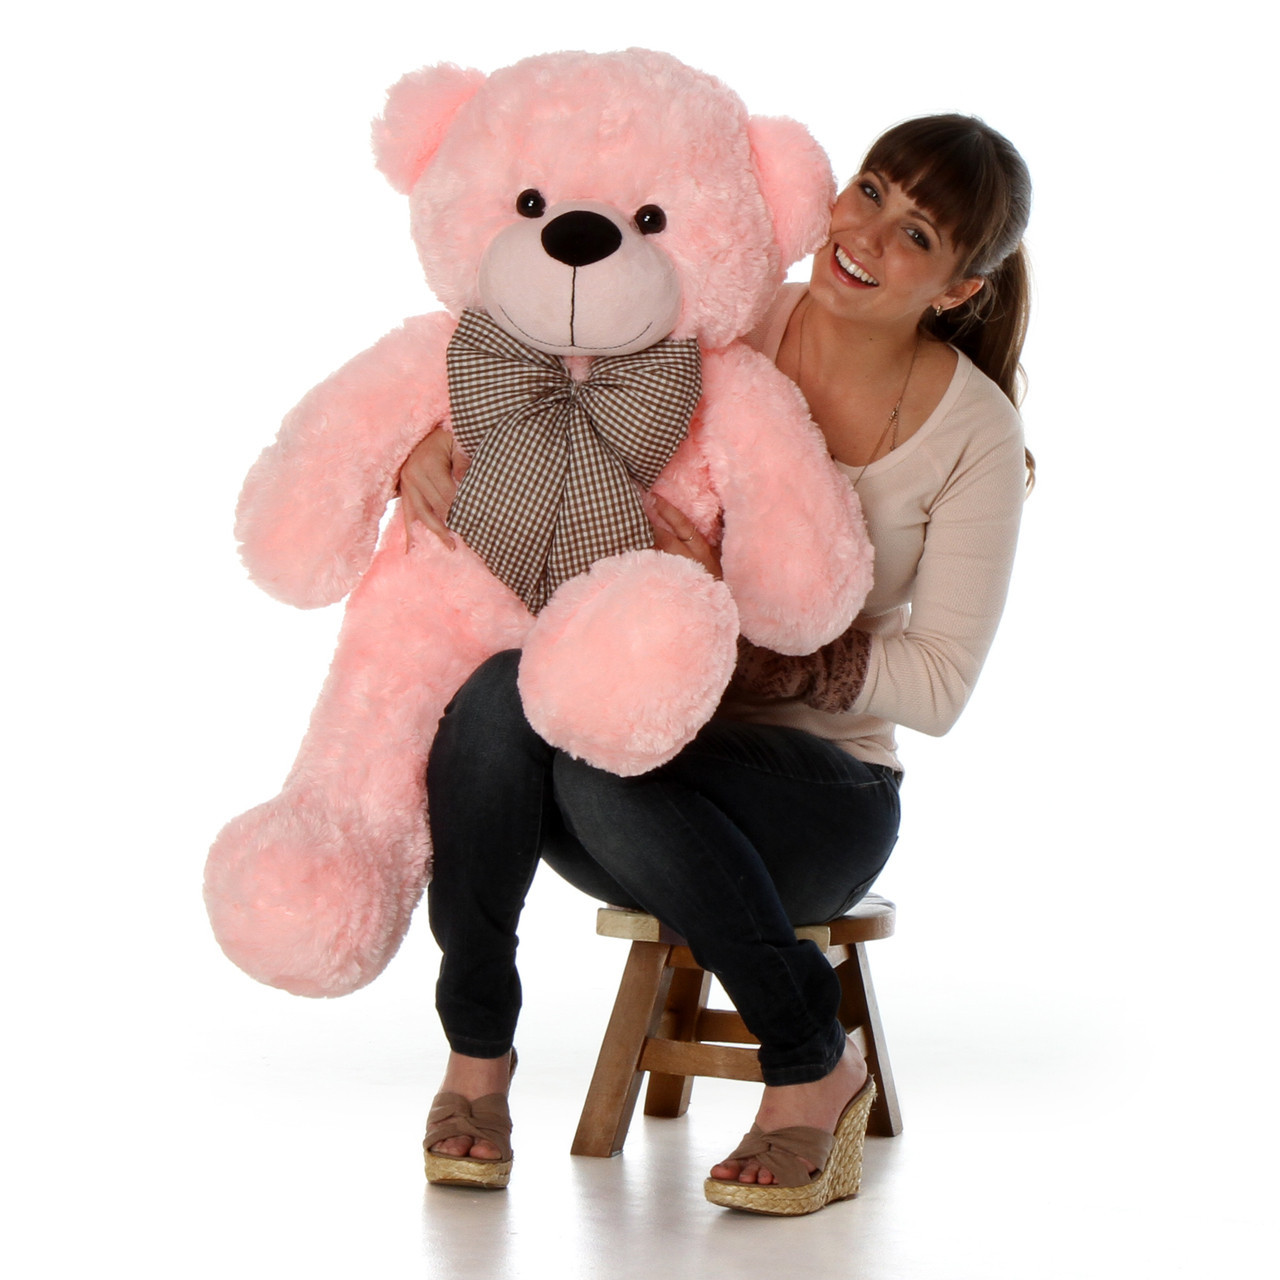 3ft 2in pink teddy bear you'll be wowed by how big and soft she is, meet Lady Cuddles from Giant Teddy